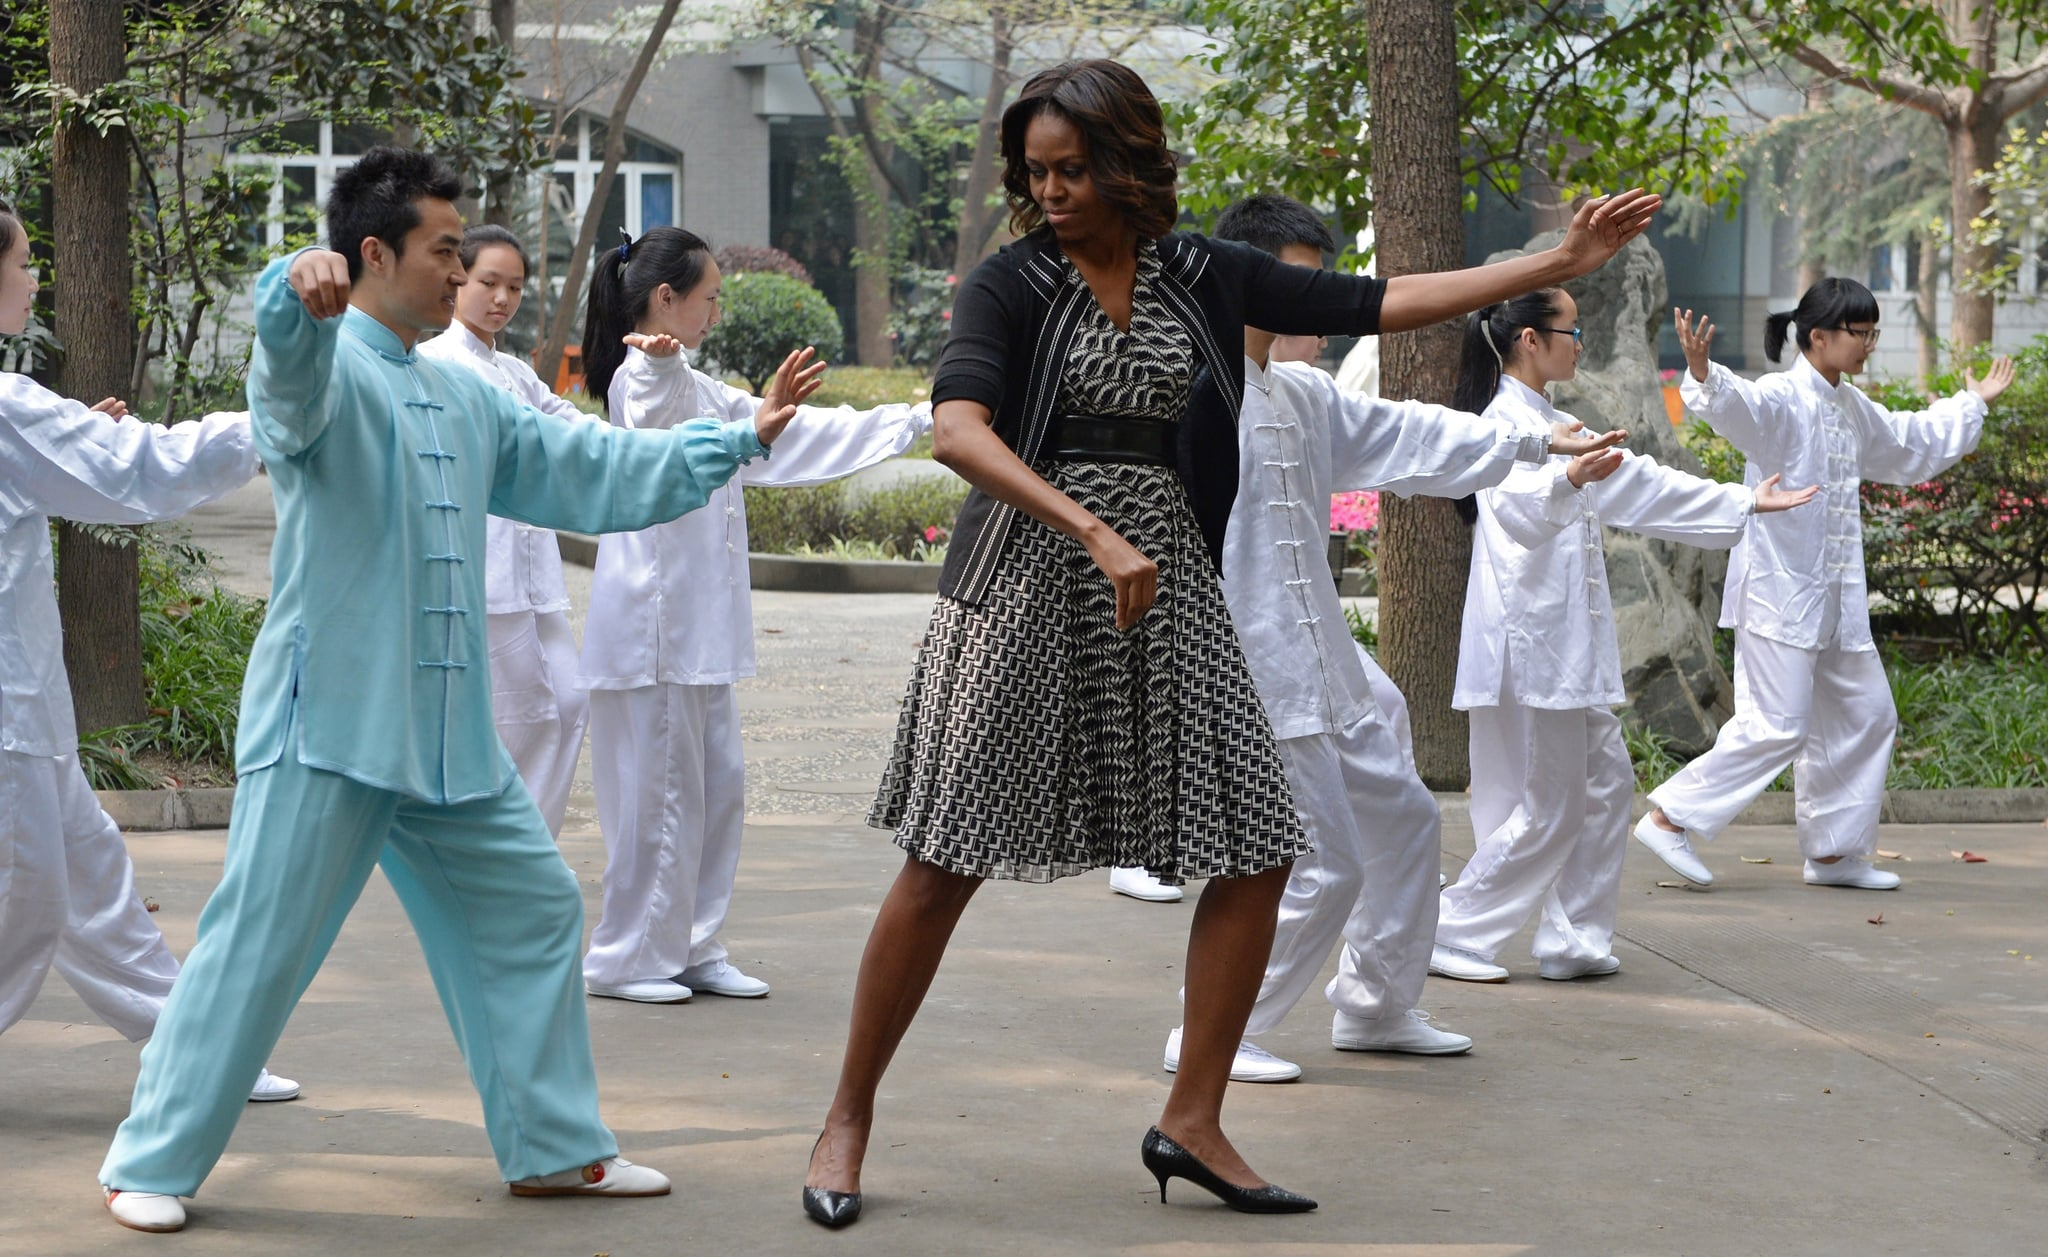 Michelle Obama tried her hand at tai chi with students at a Chengdu school.